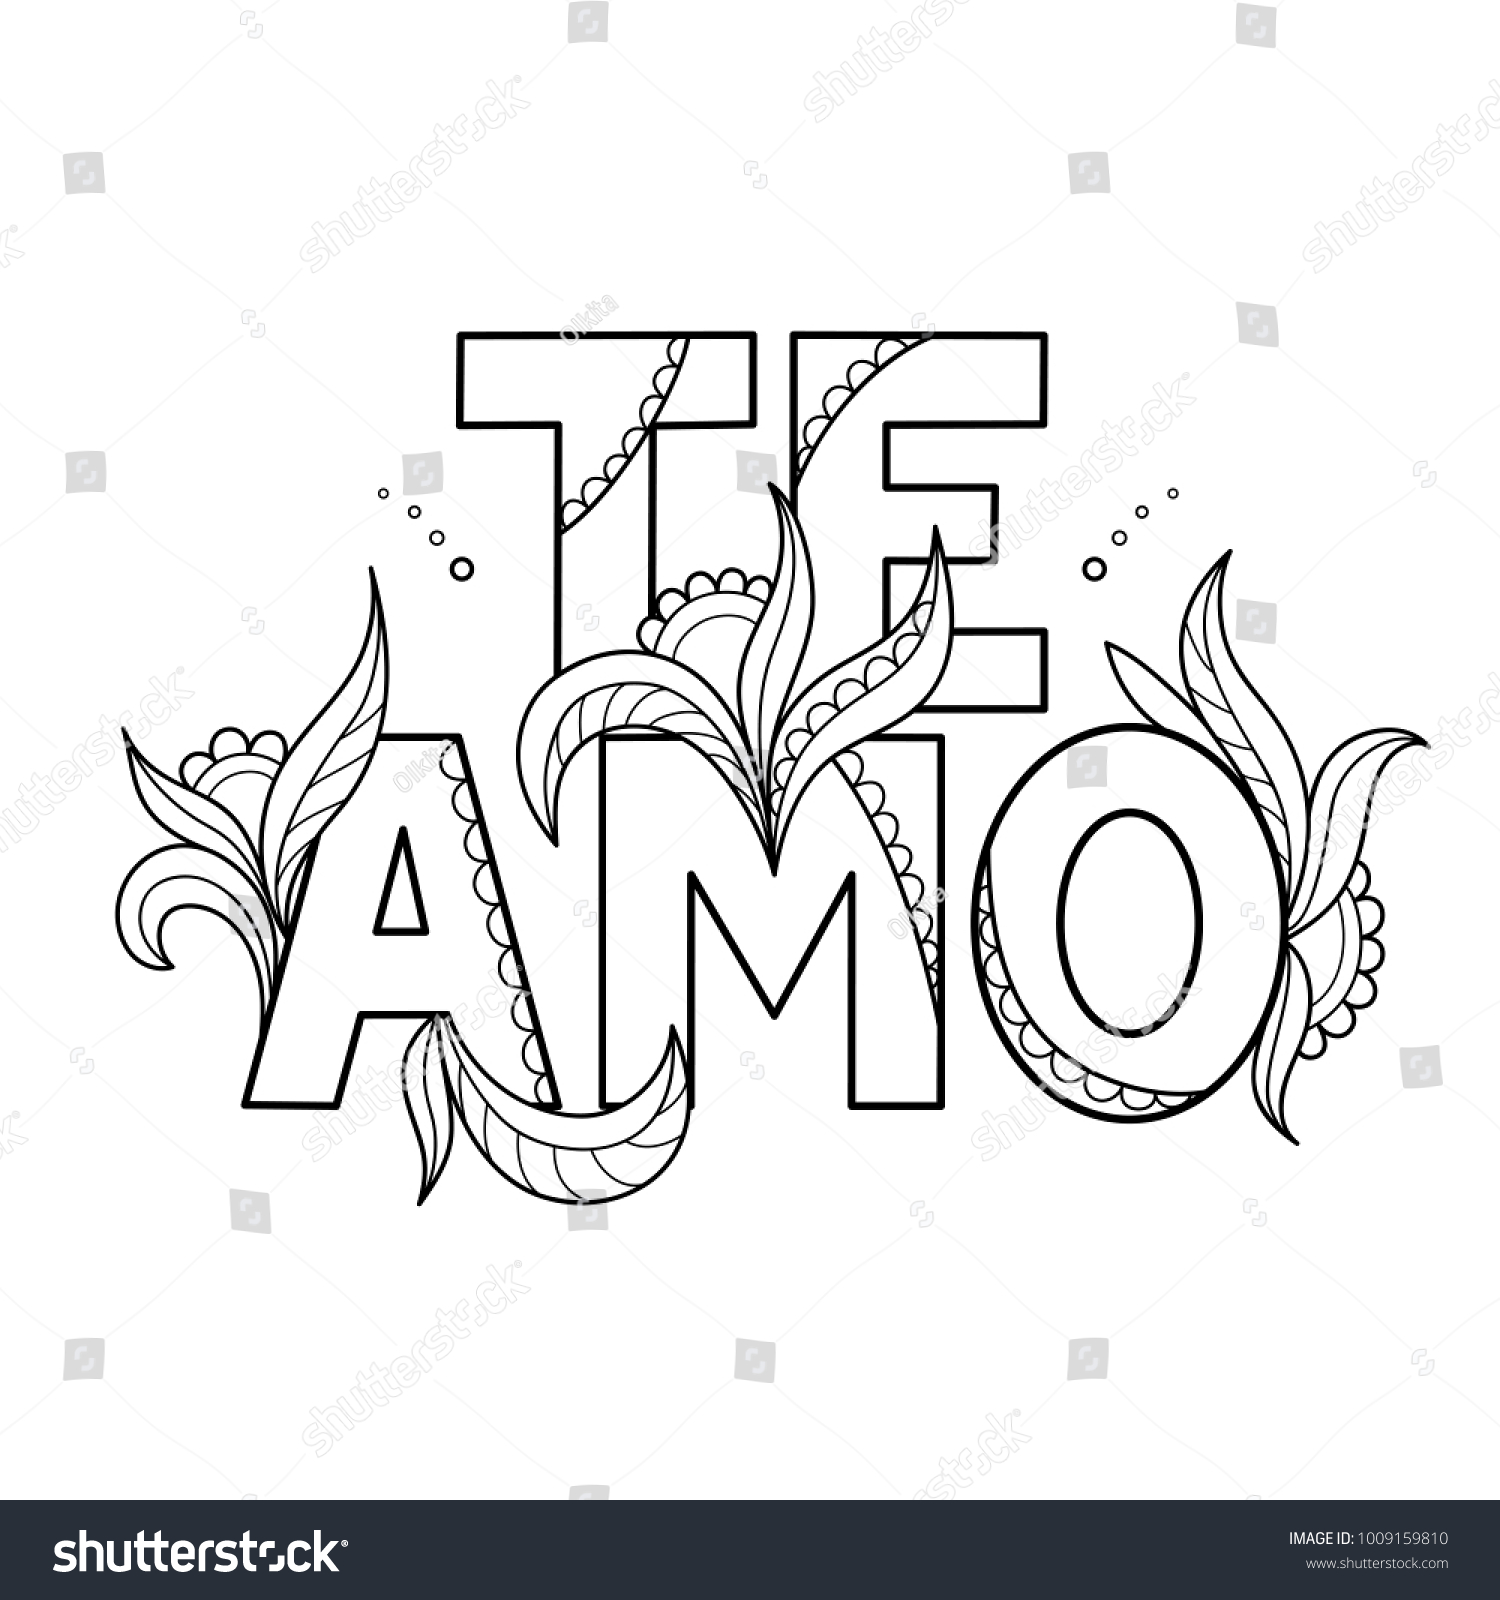 Black Outline Isolated Hand Drawn Decorative Stock Vector (Royalty ...